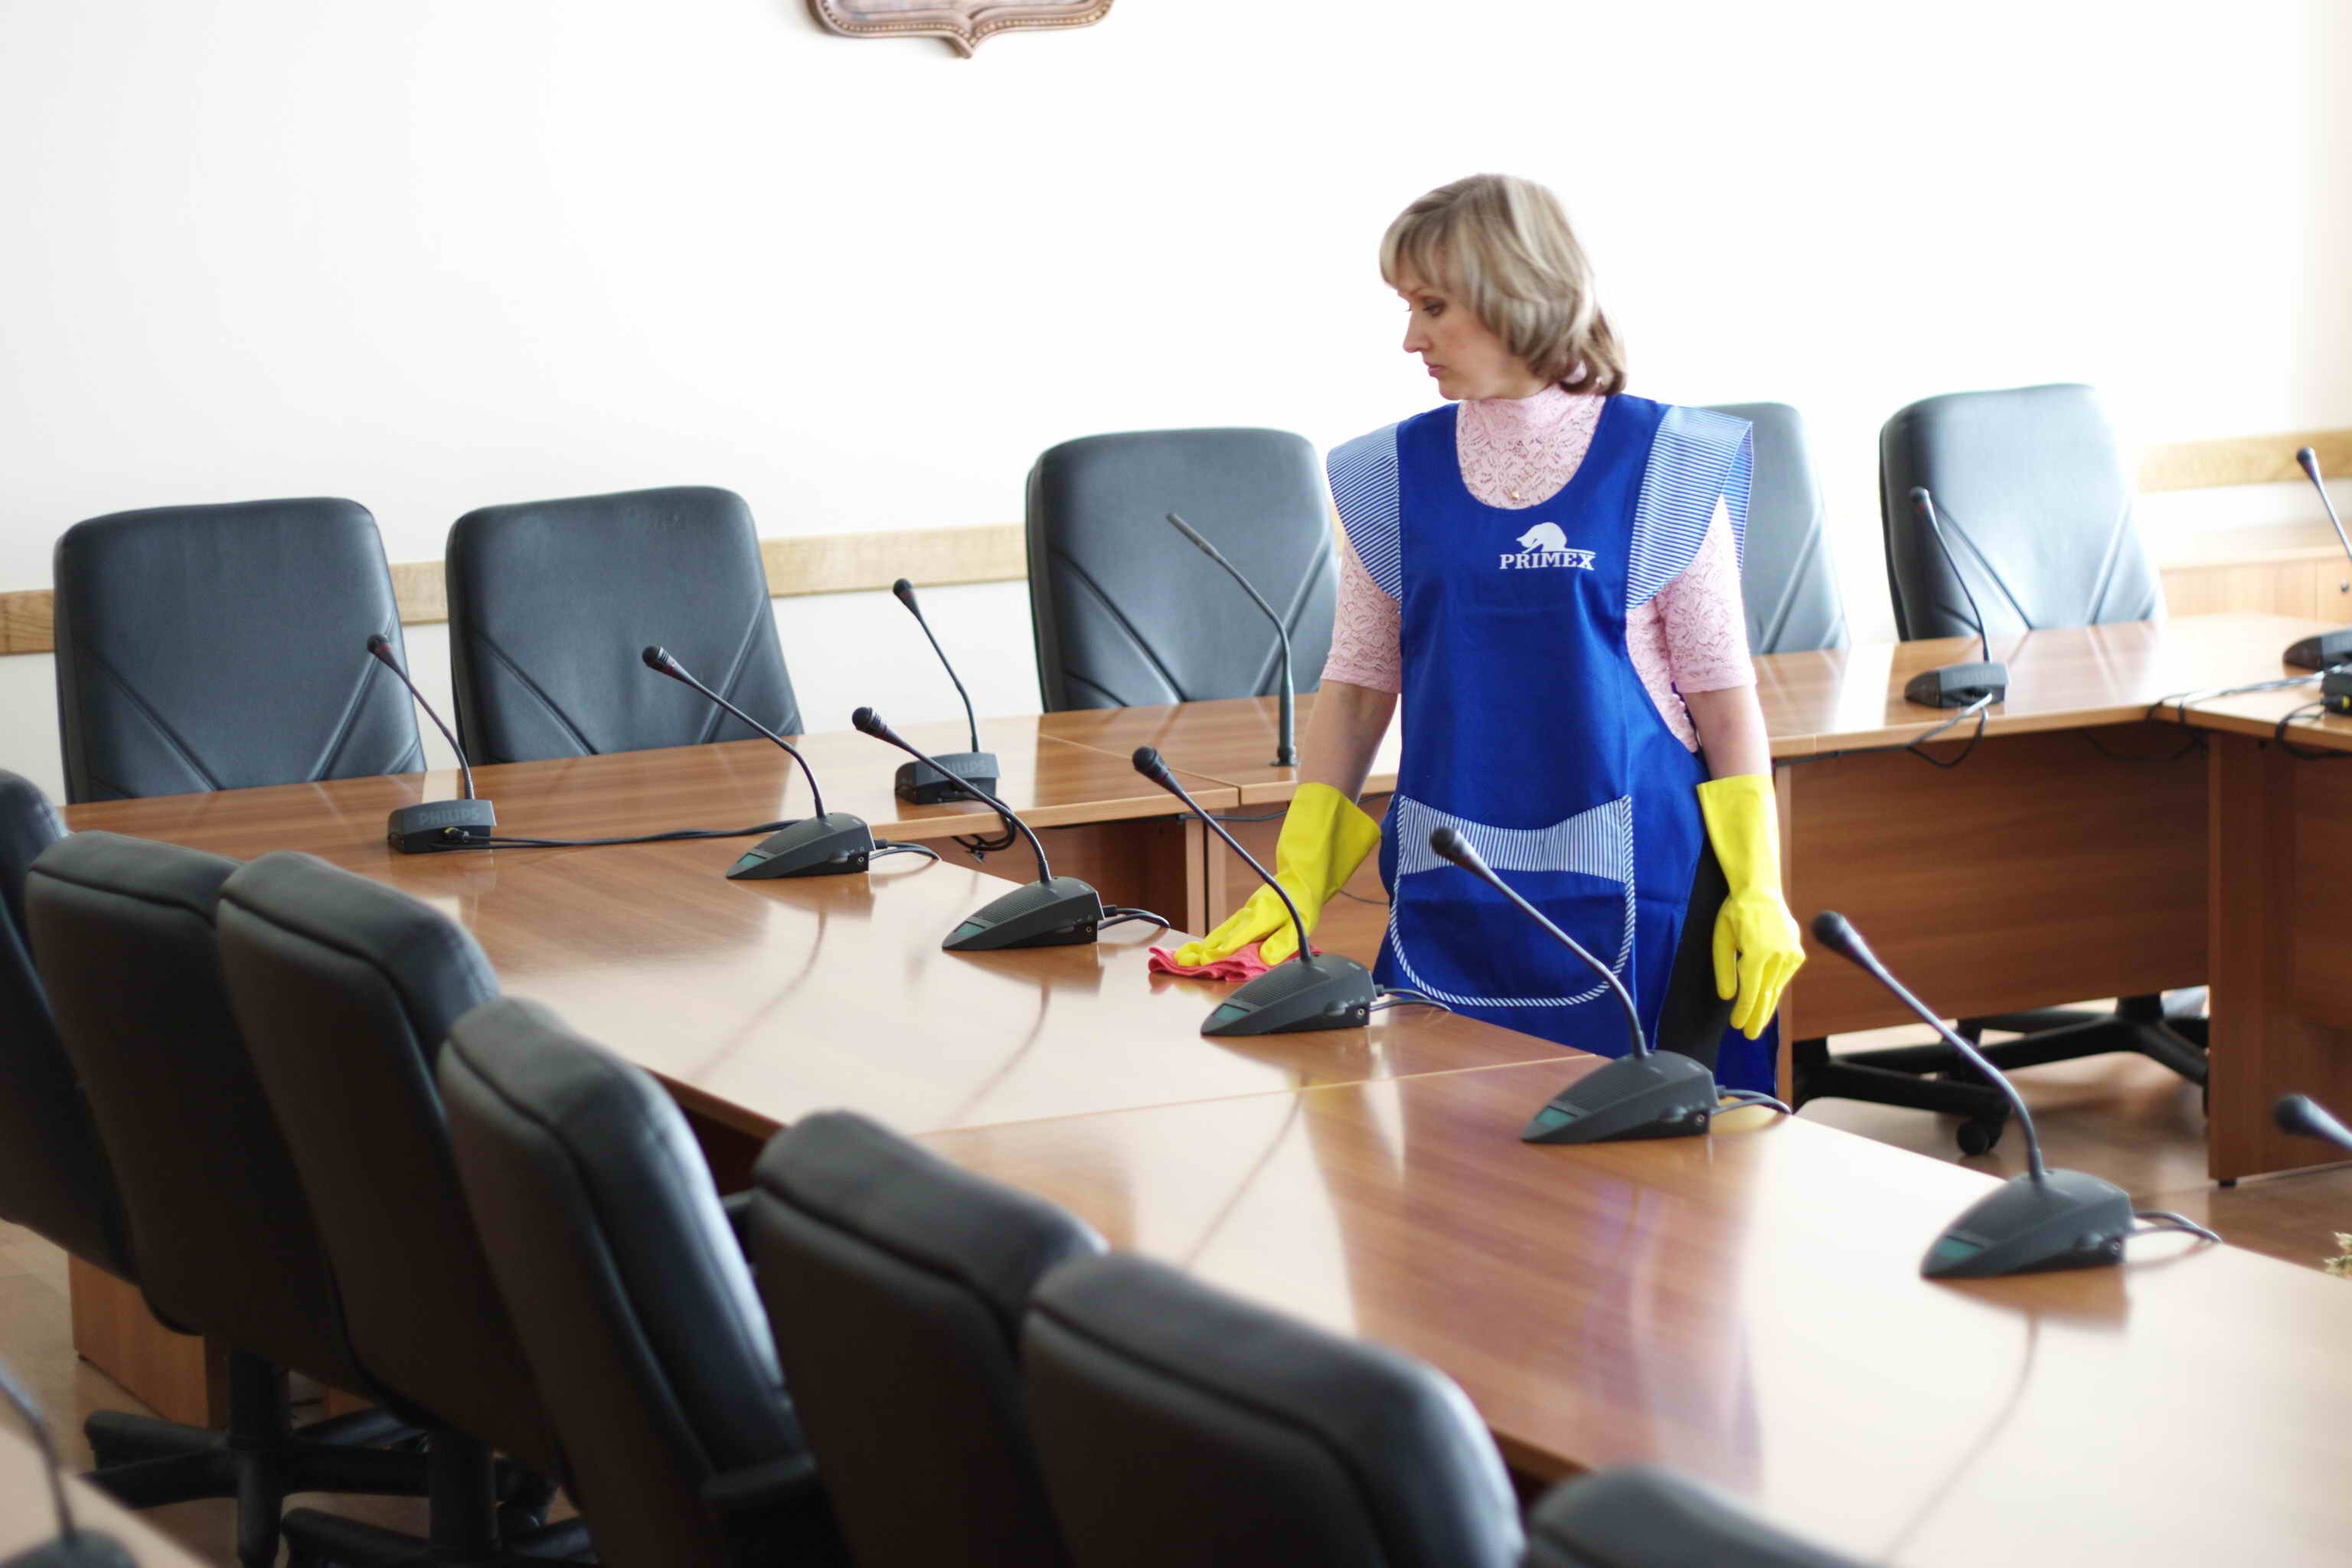 House Cleaning Services Toms River